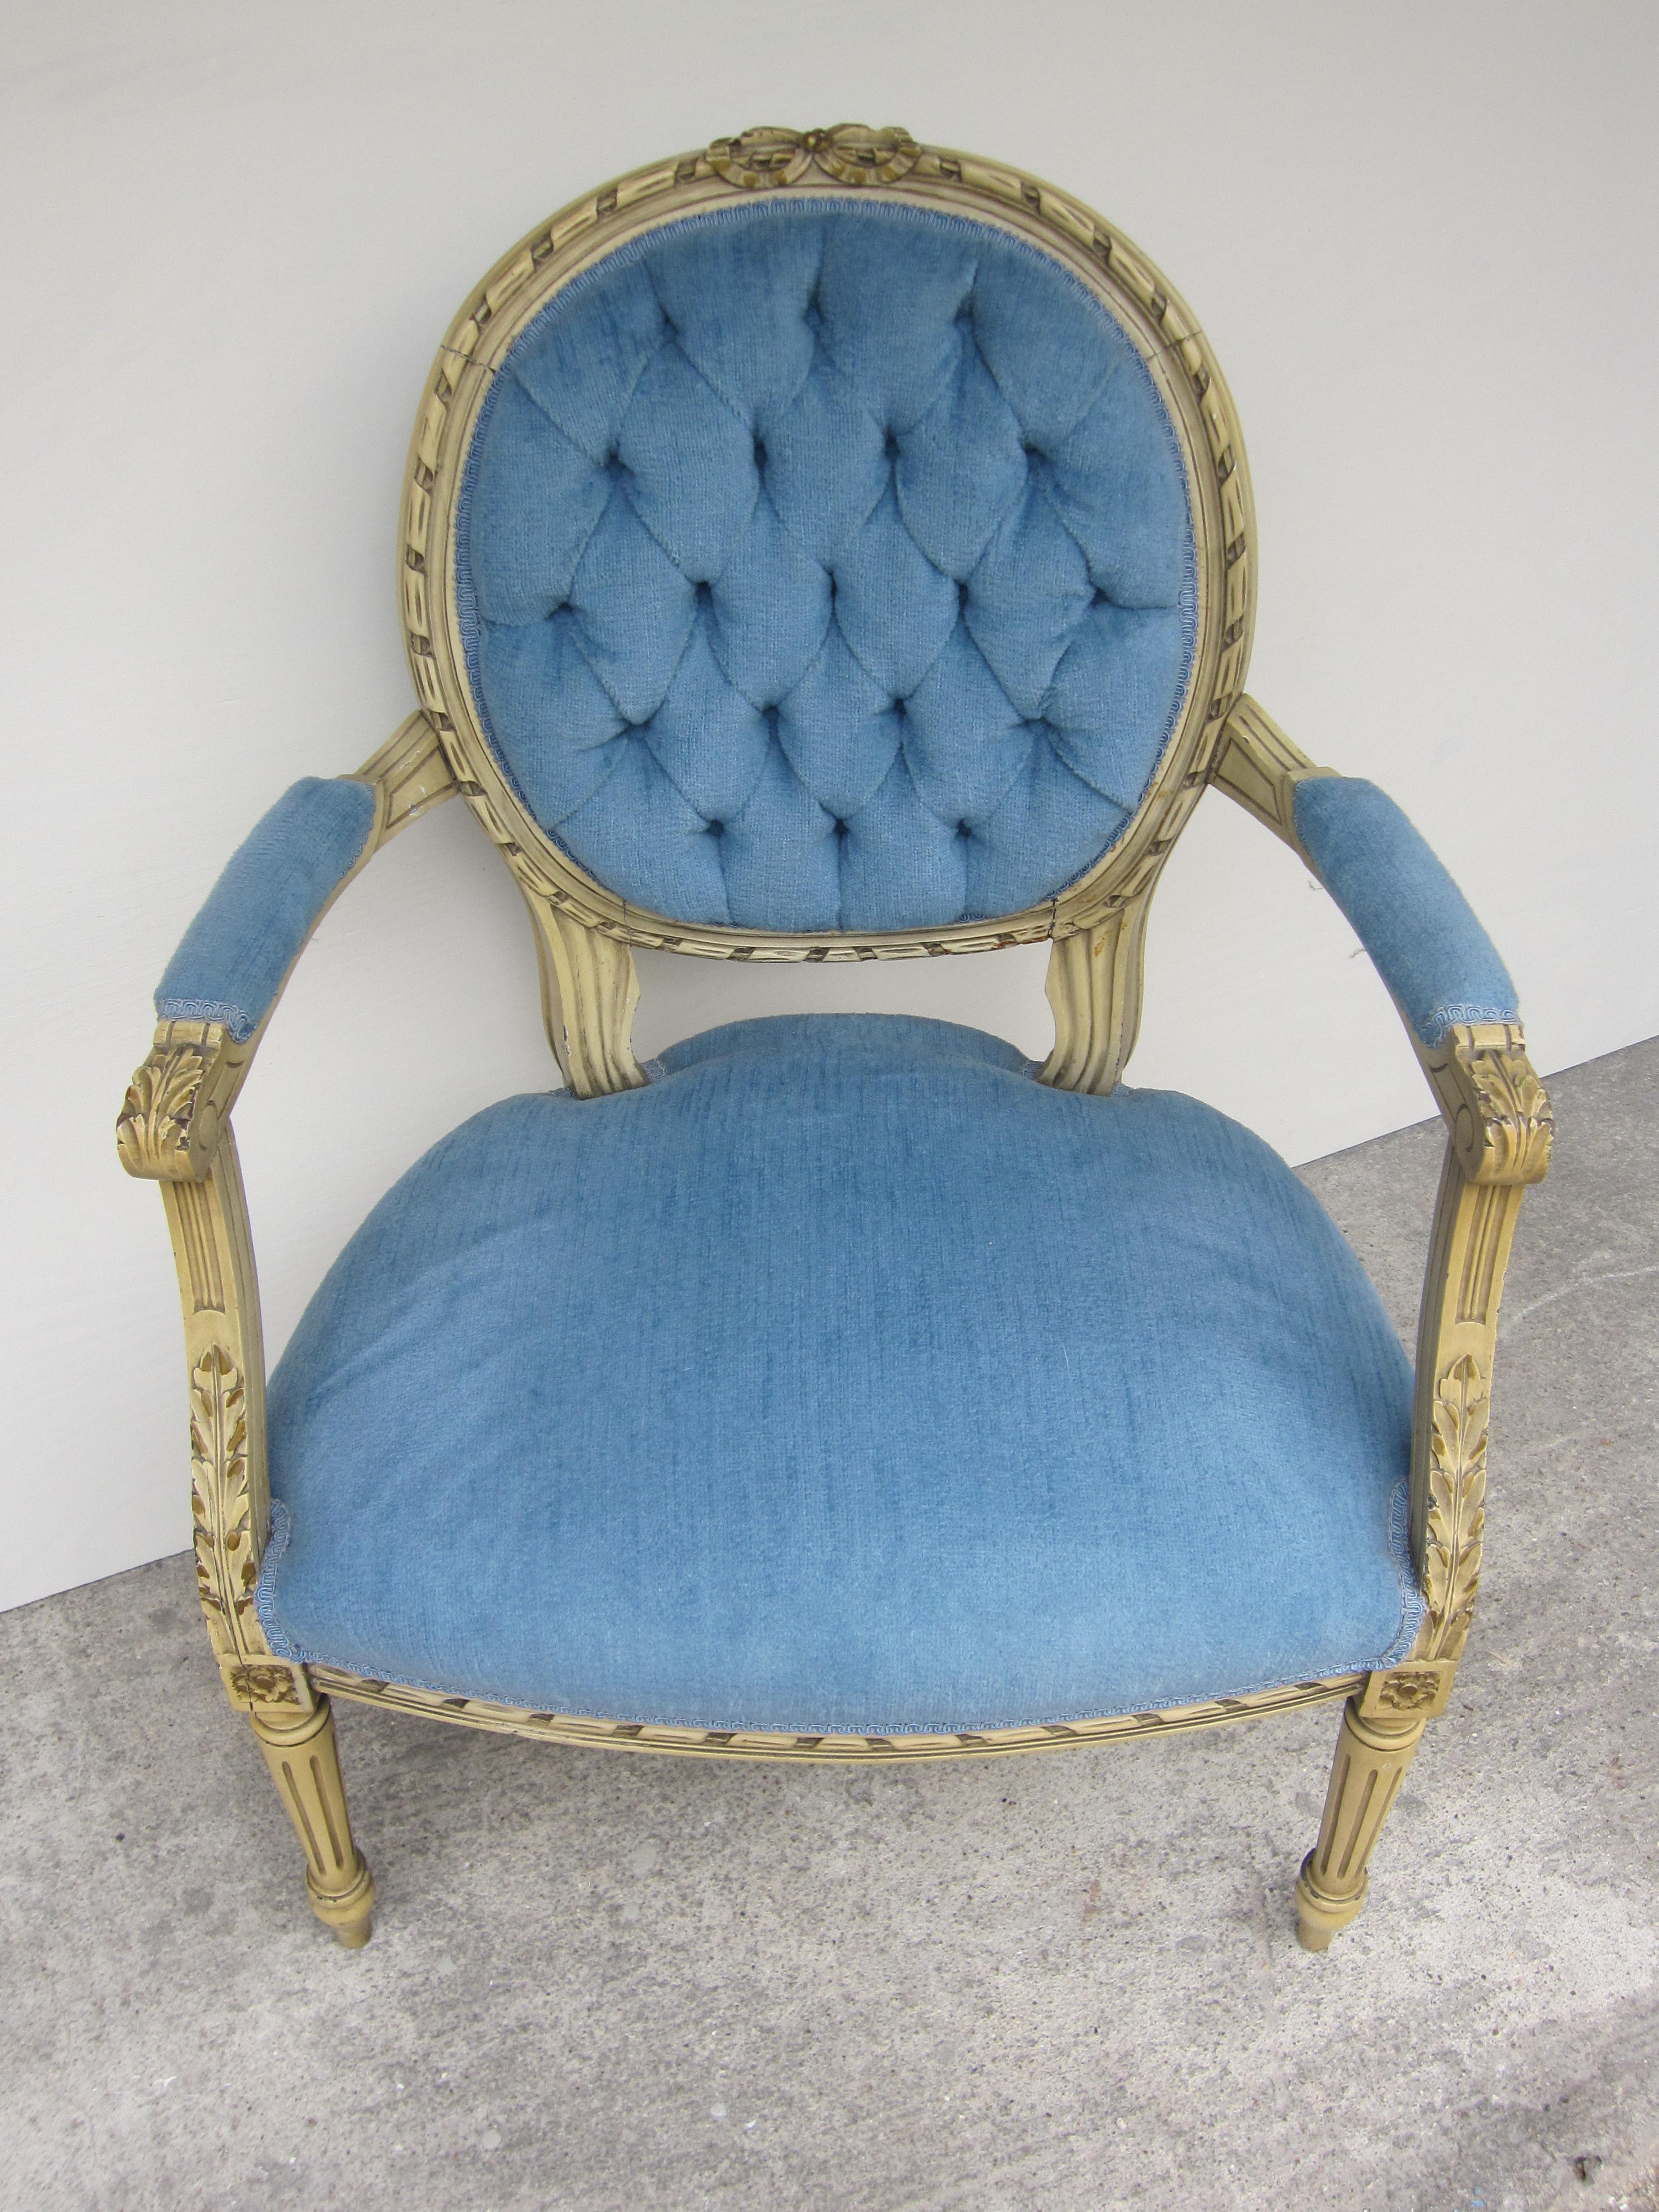 Antique Blue French Chairs Houston Furniture Refinishing